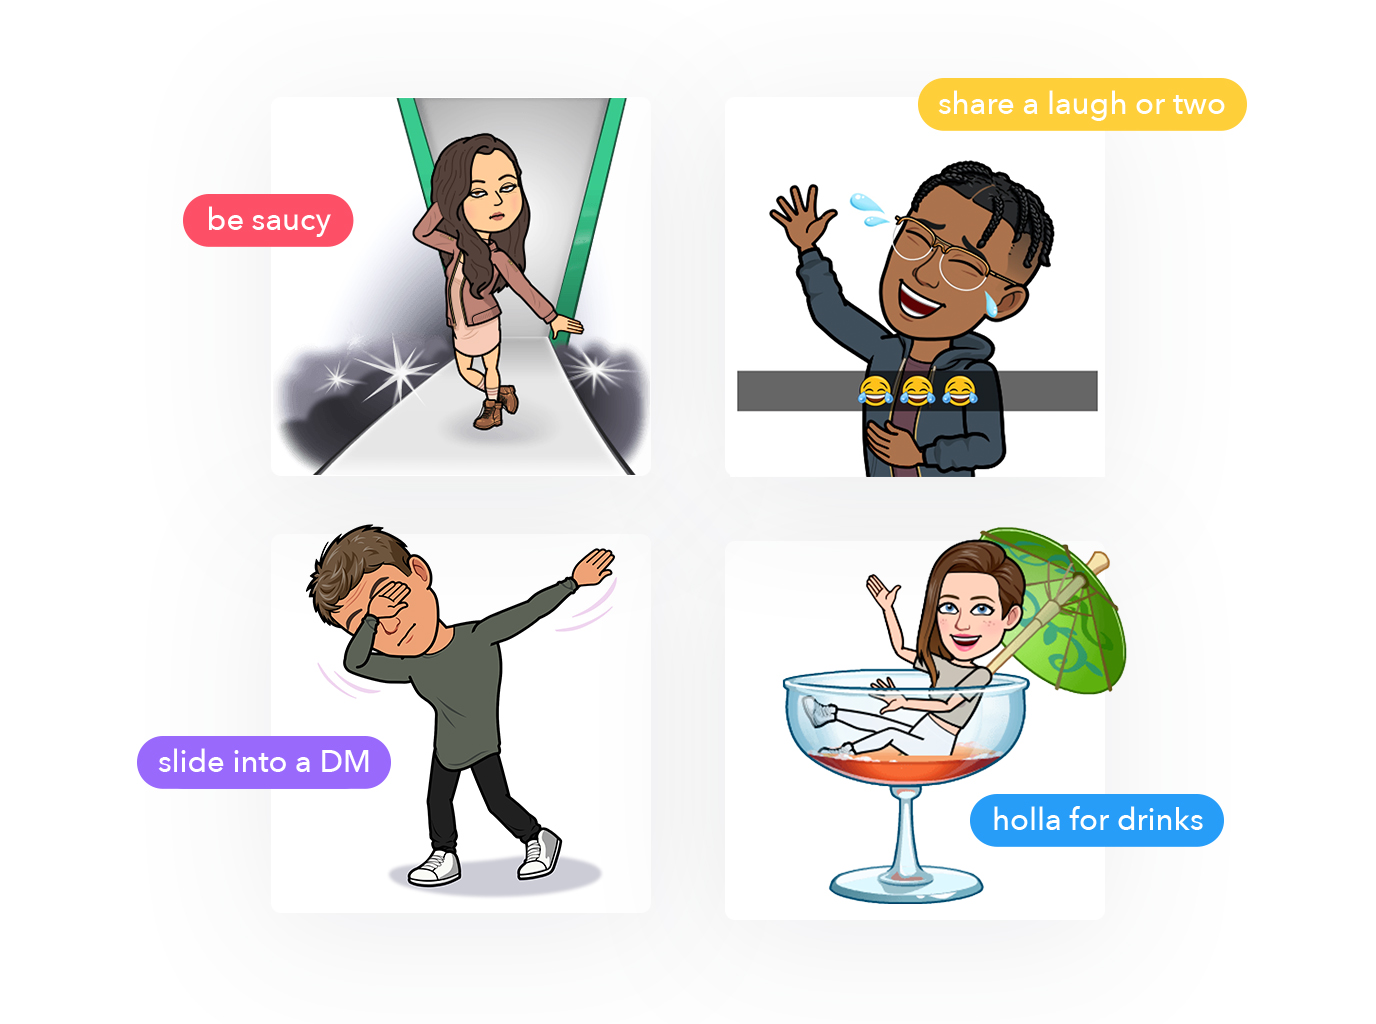 Tinder tests Bitmoji integration using the recently launched Snap